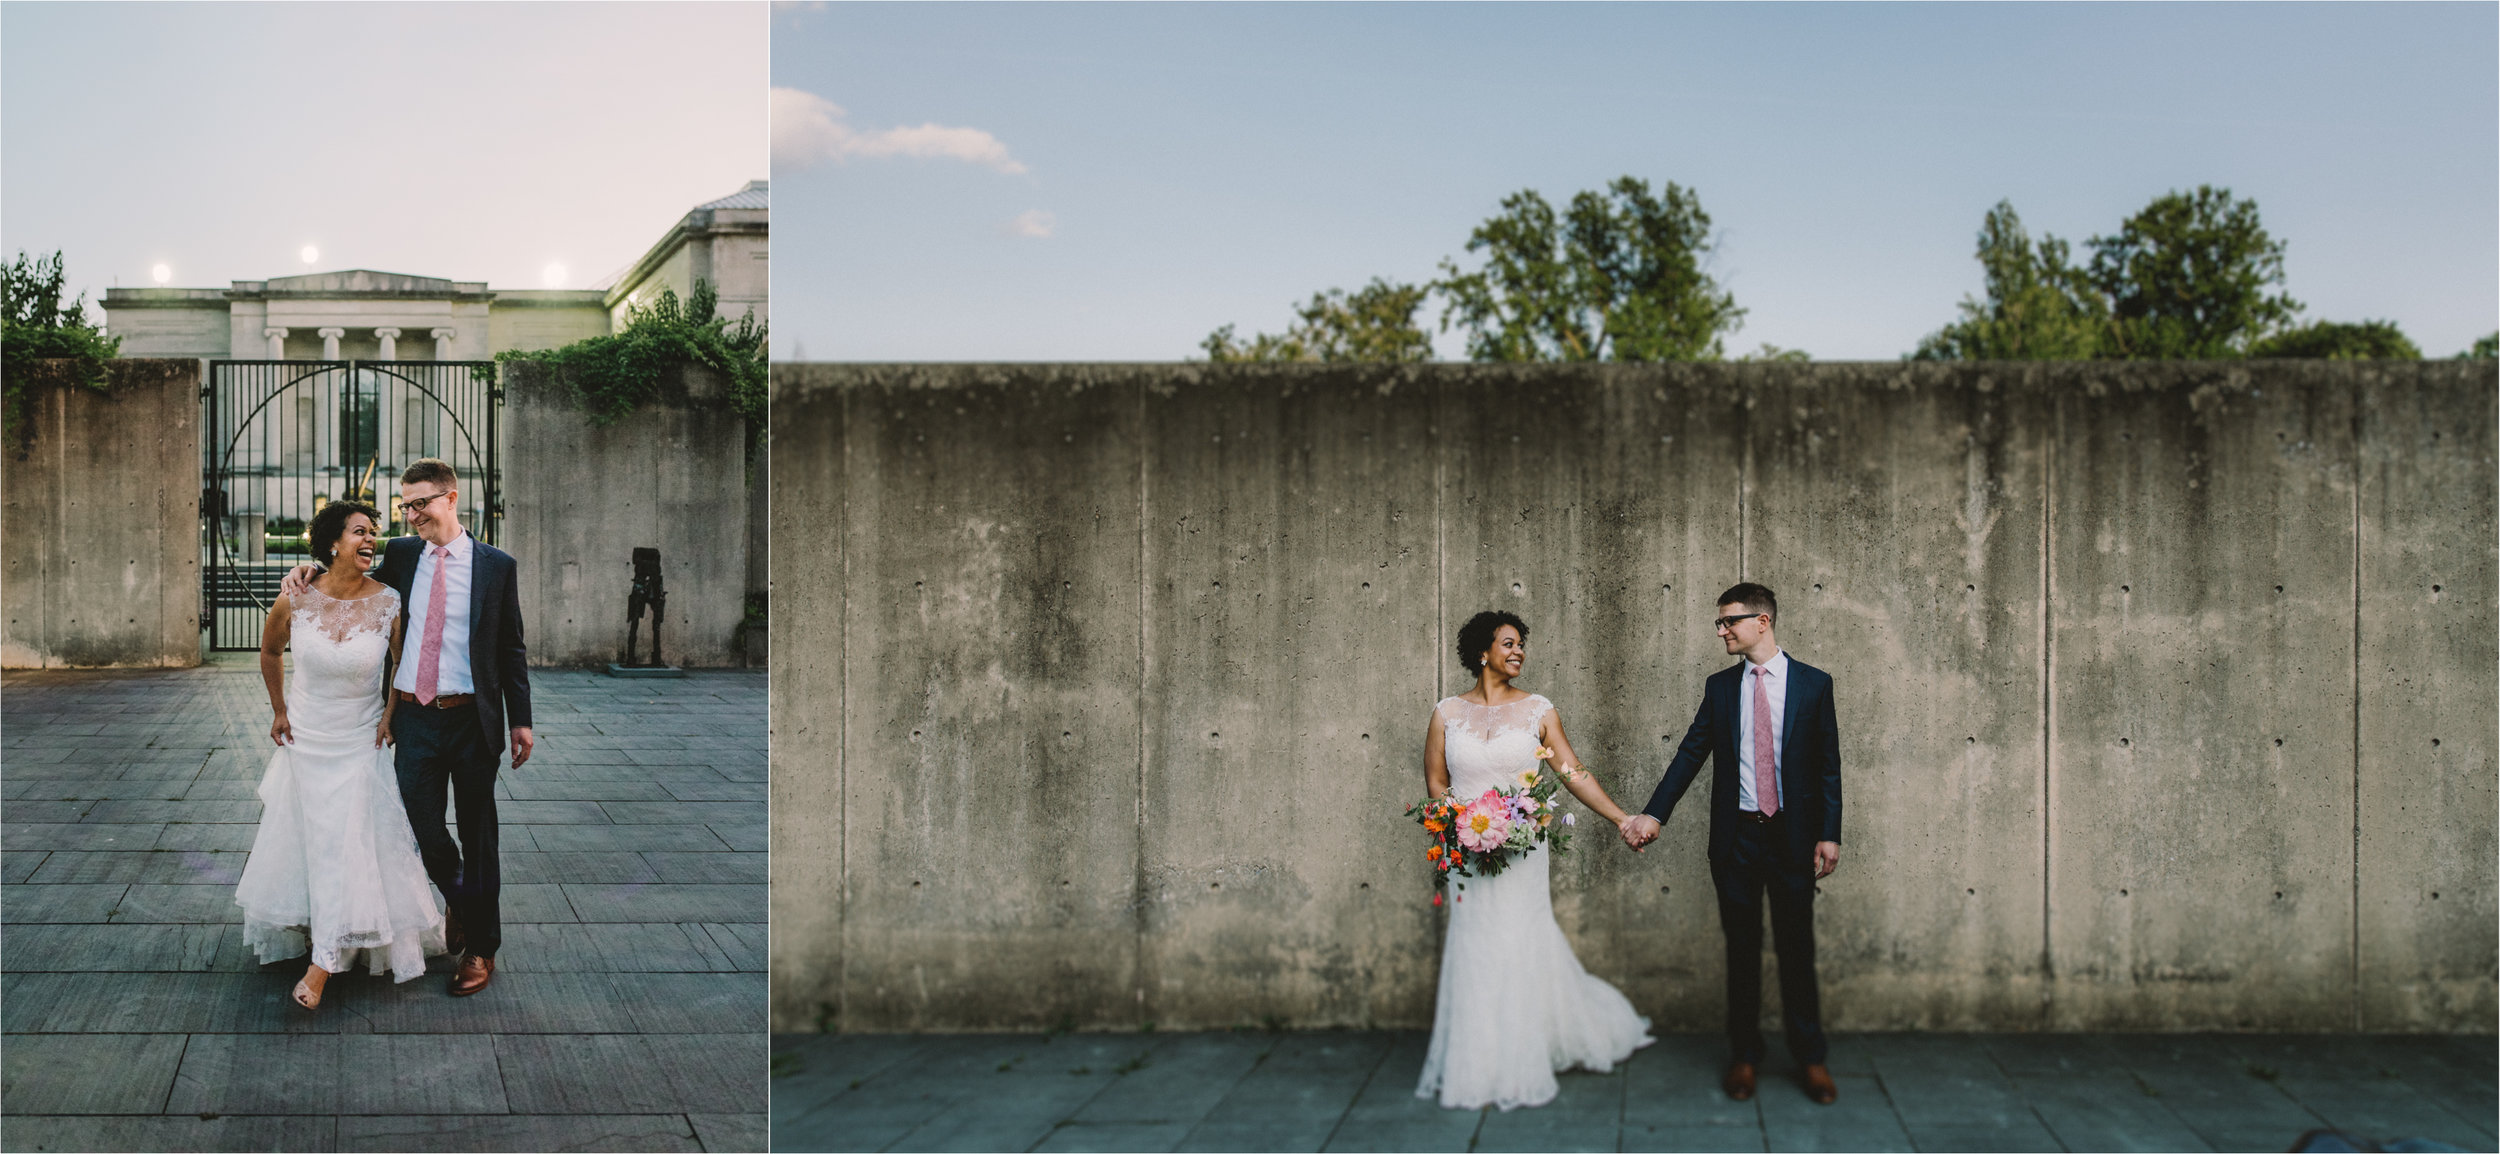 Washington DC Baltimore Gertrudes Wedding Photographer3.jpg